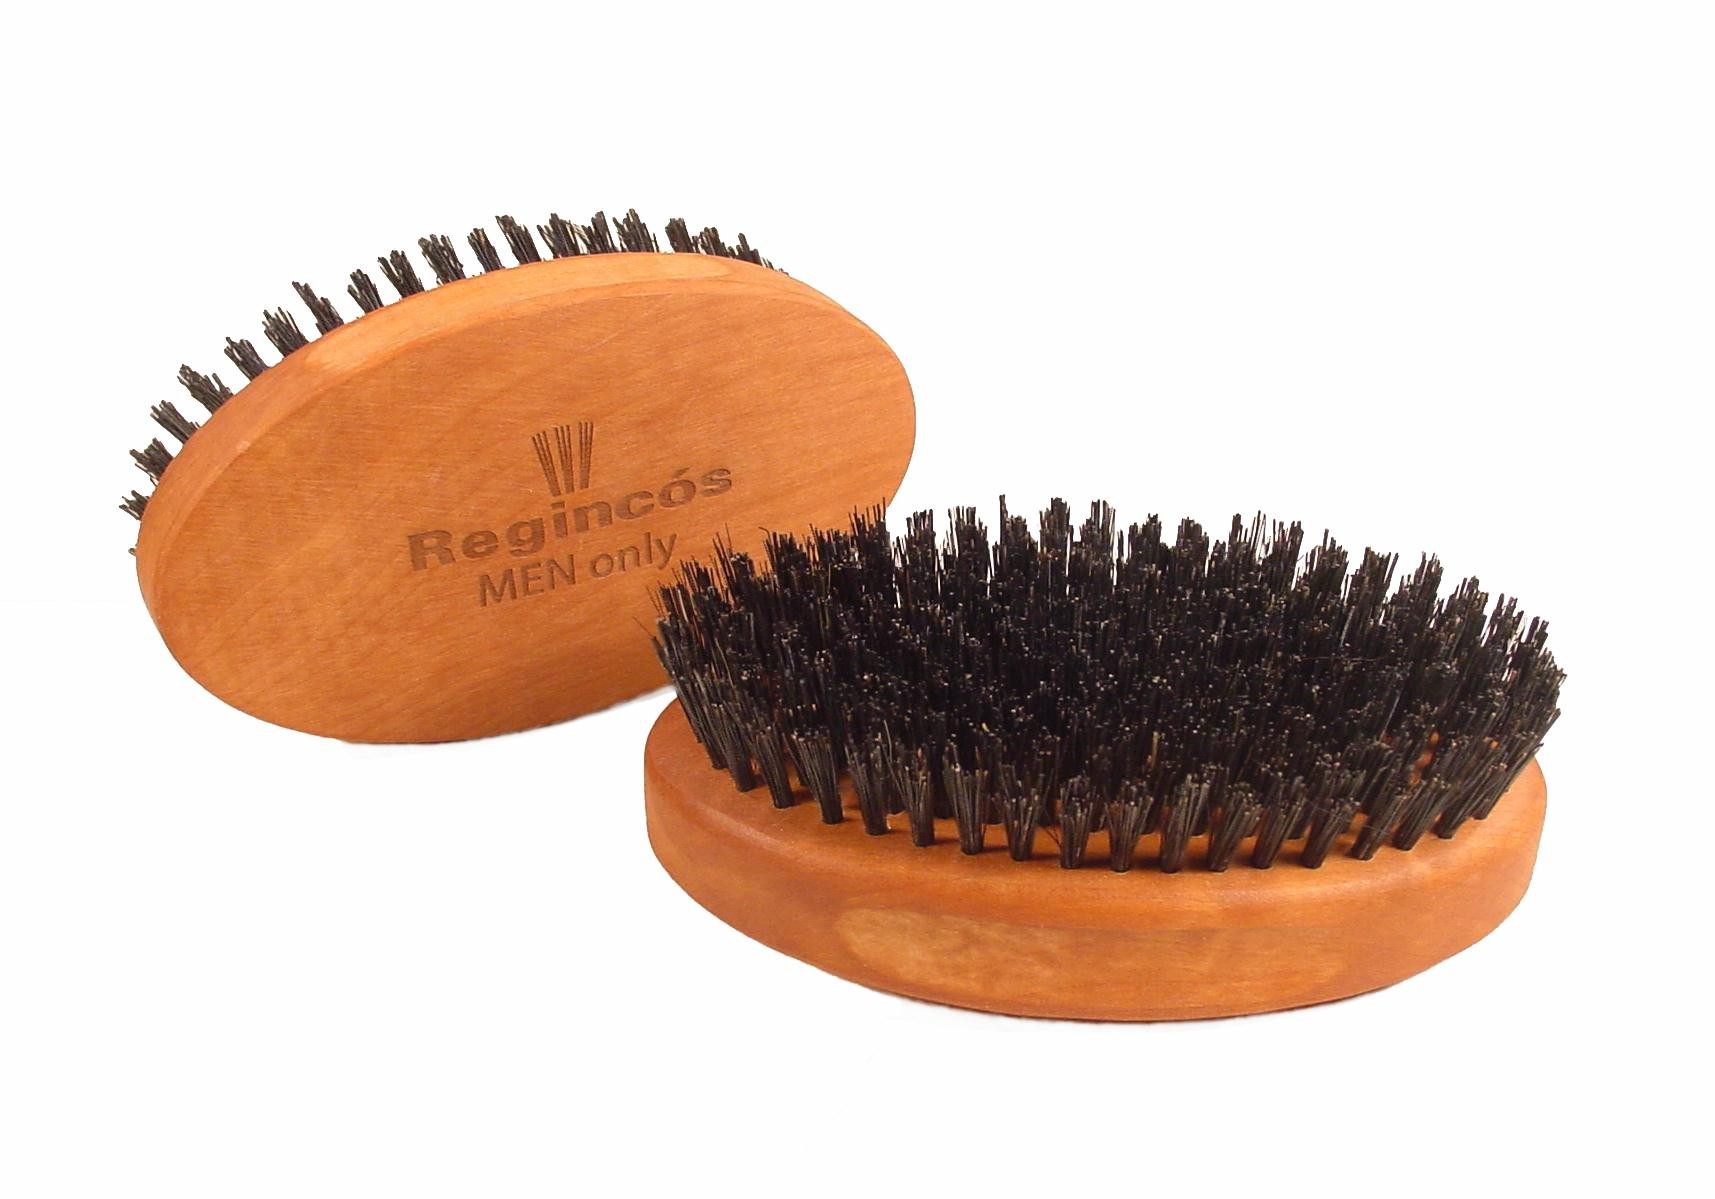 LARGE Oval (Military brush) / MEN Only